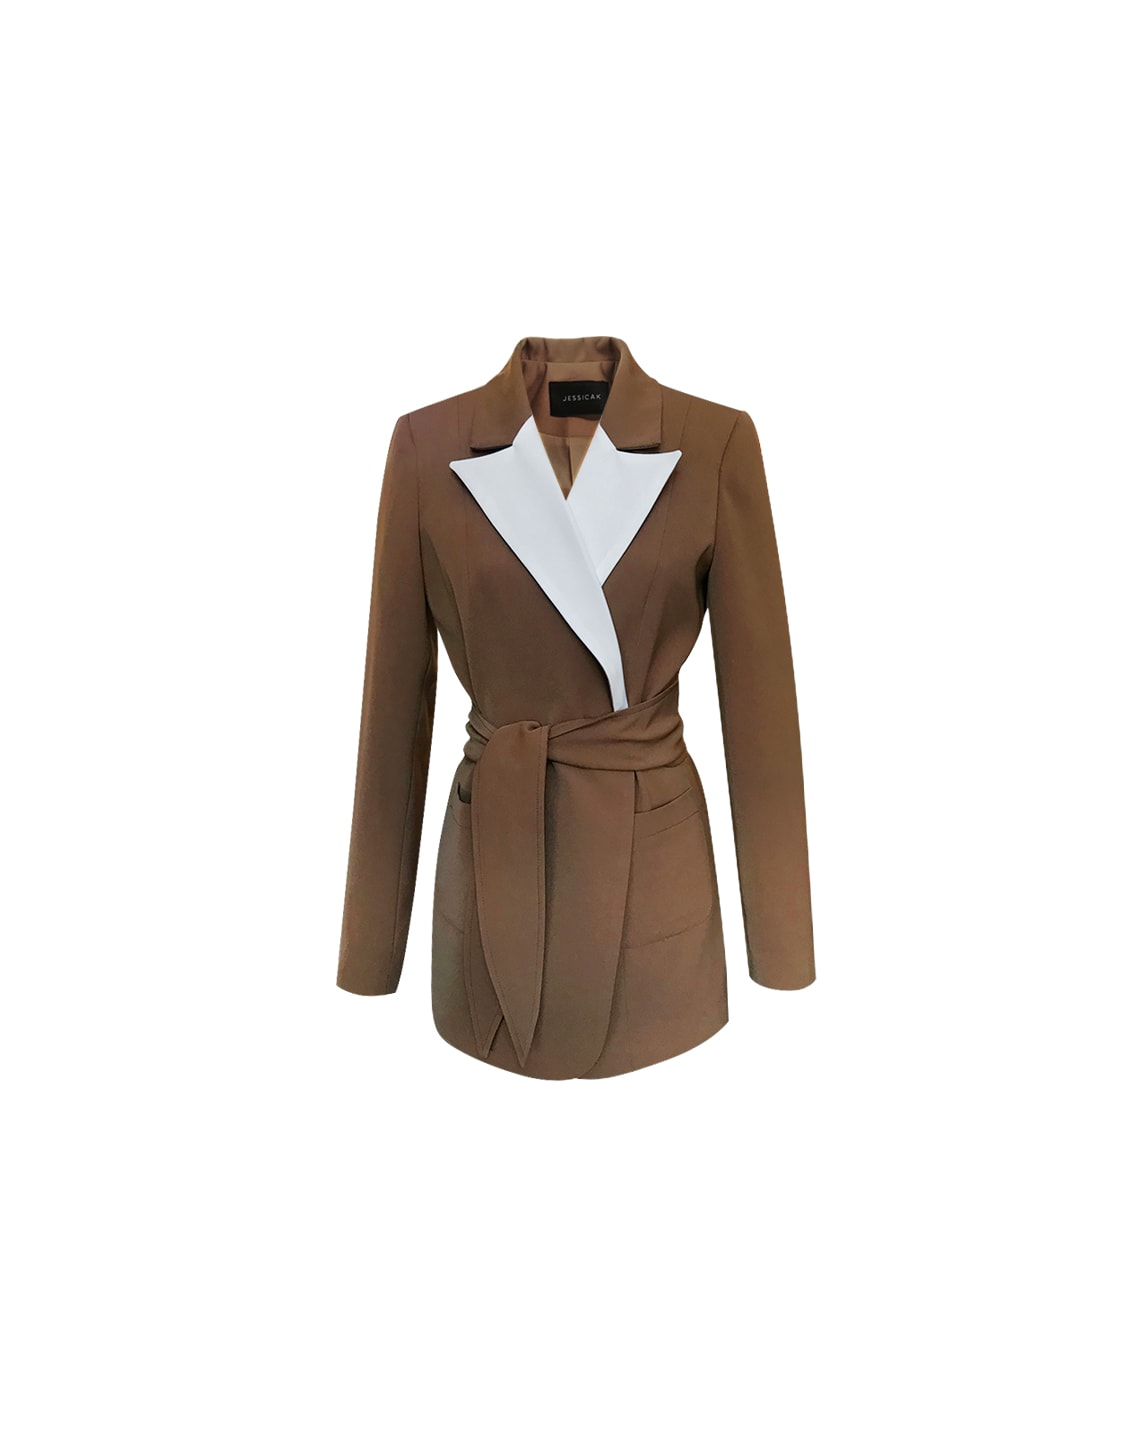 Ashley Blazer - Beige by Jessica K on curated-crowd.com